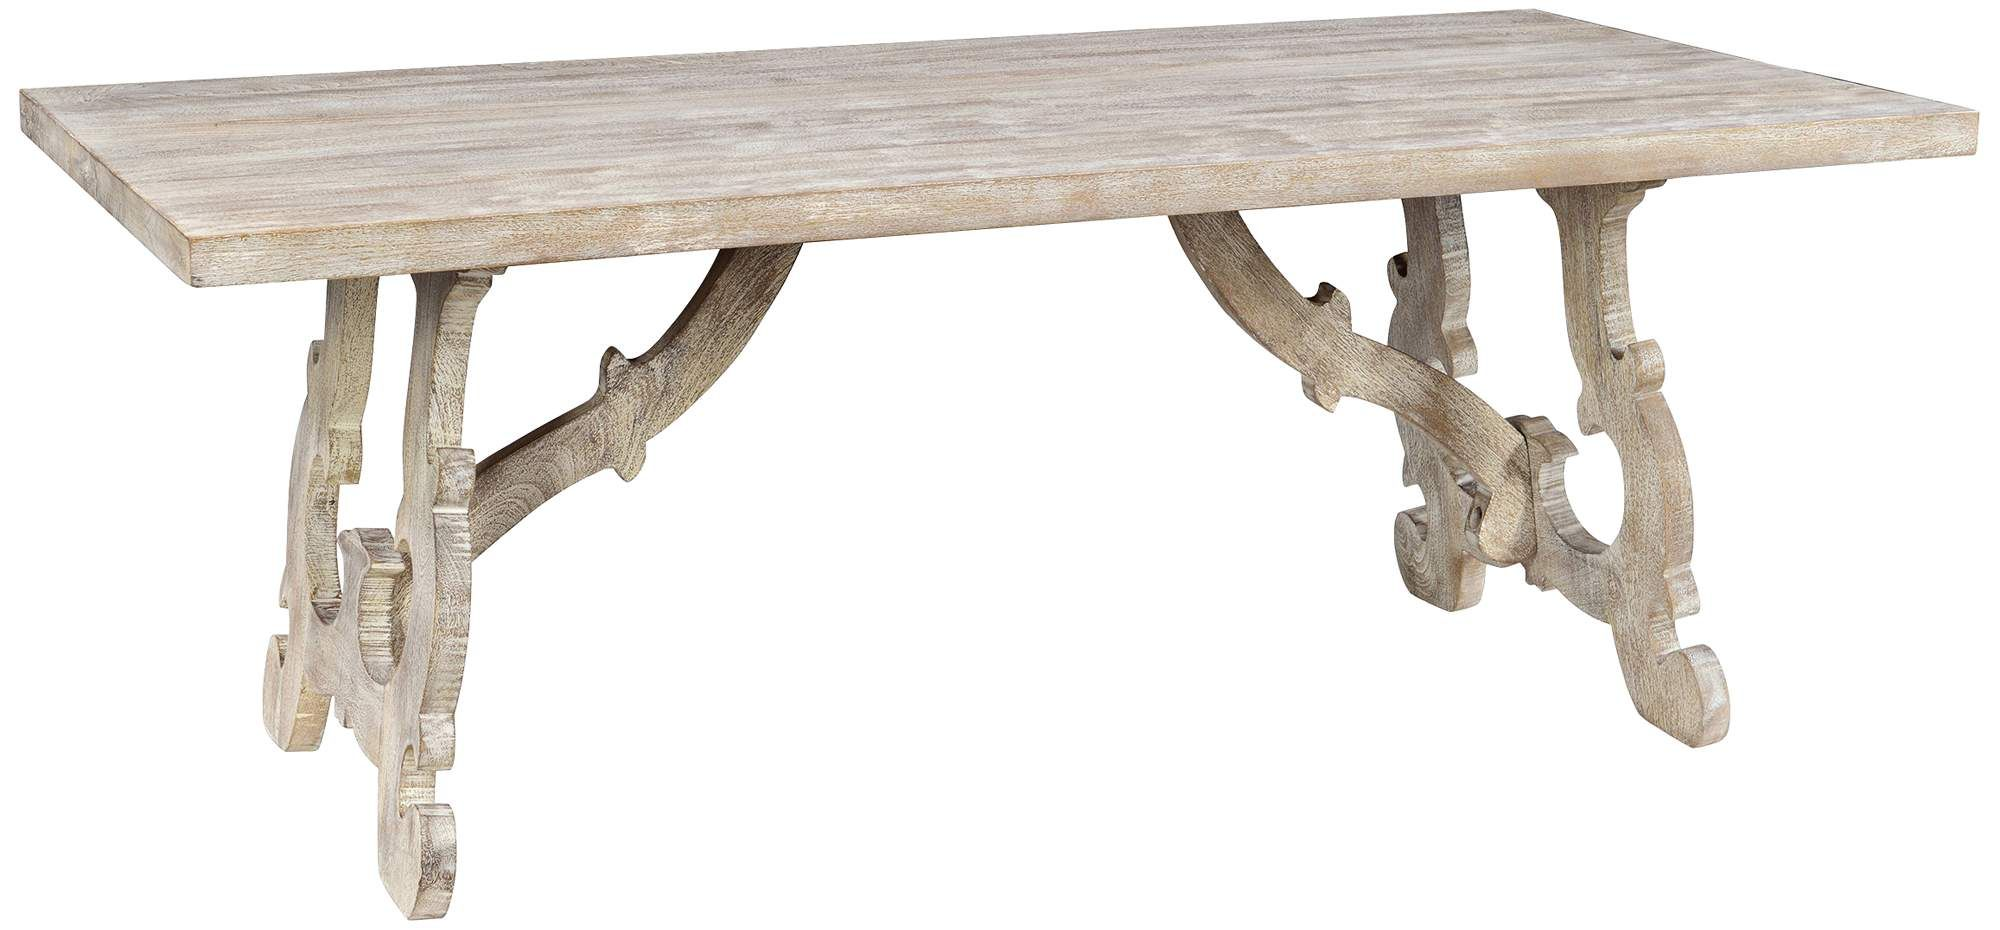 Elena 78 Inch Wide Distressed Wood Rectangular Dining Table Grey